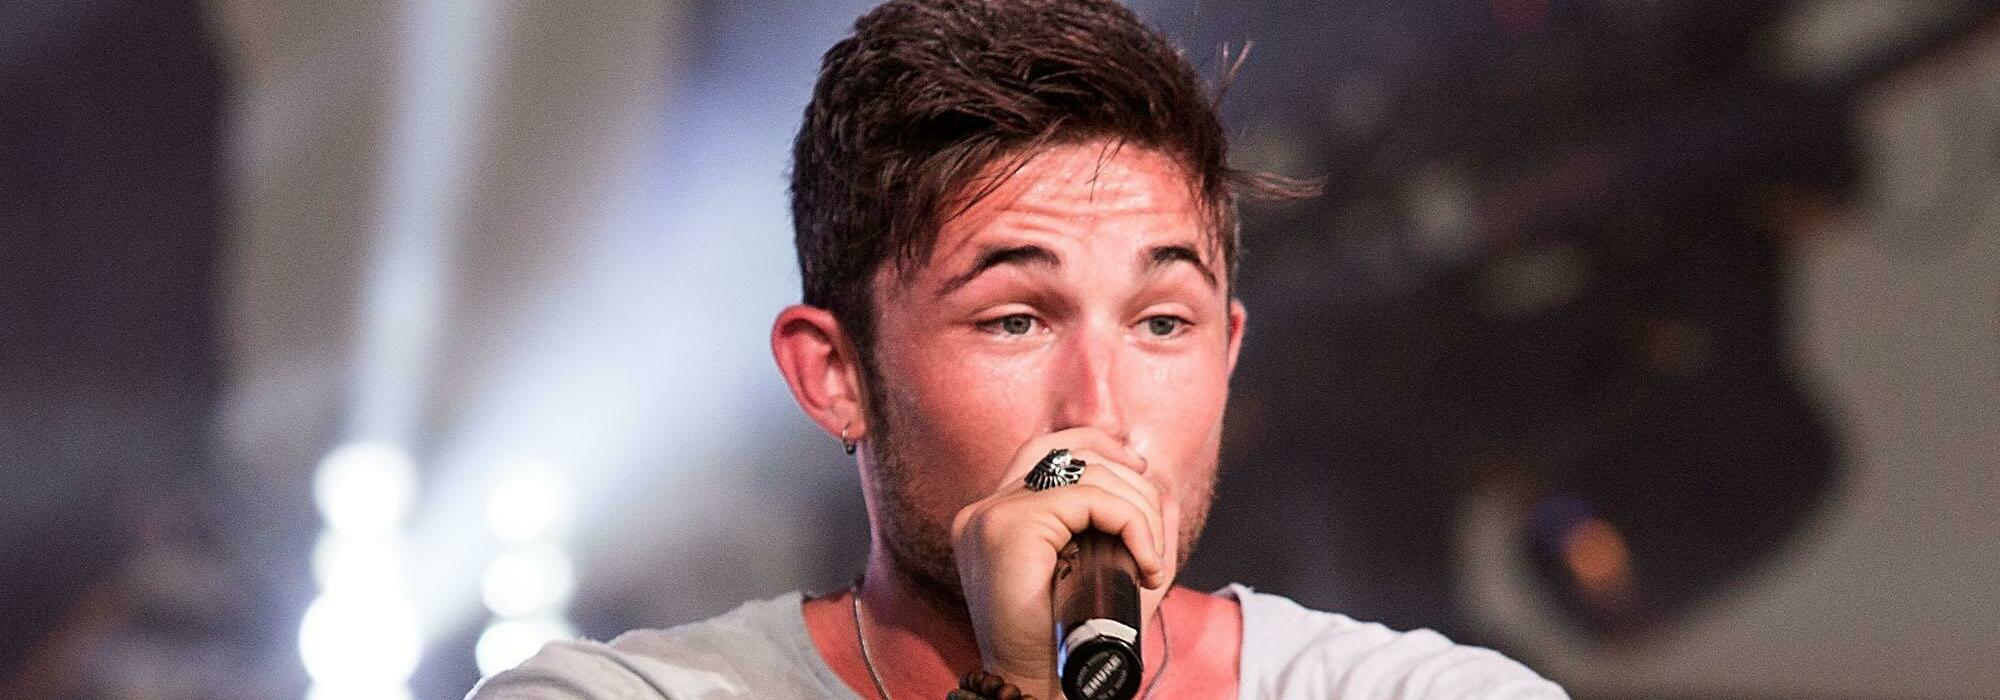 A Michael Ray live event